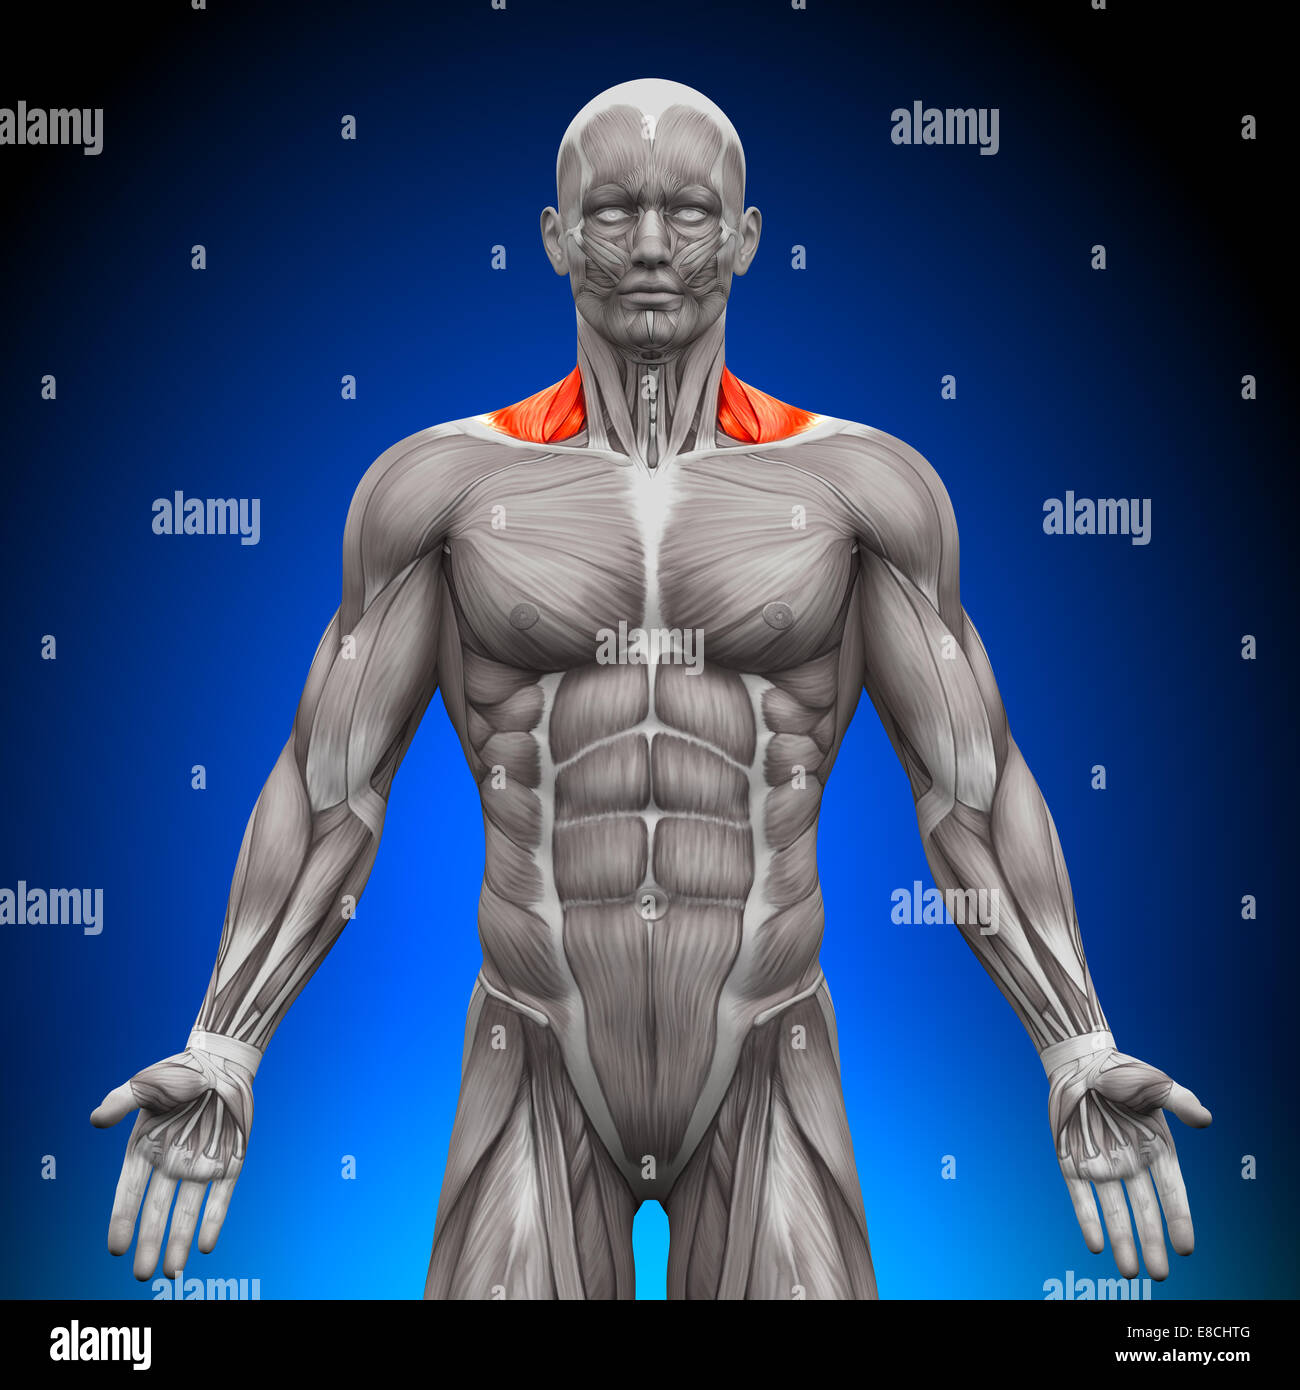 Trapezius Front / Neck Muscles - Anatomy Muscles Stock Photo ...